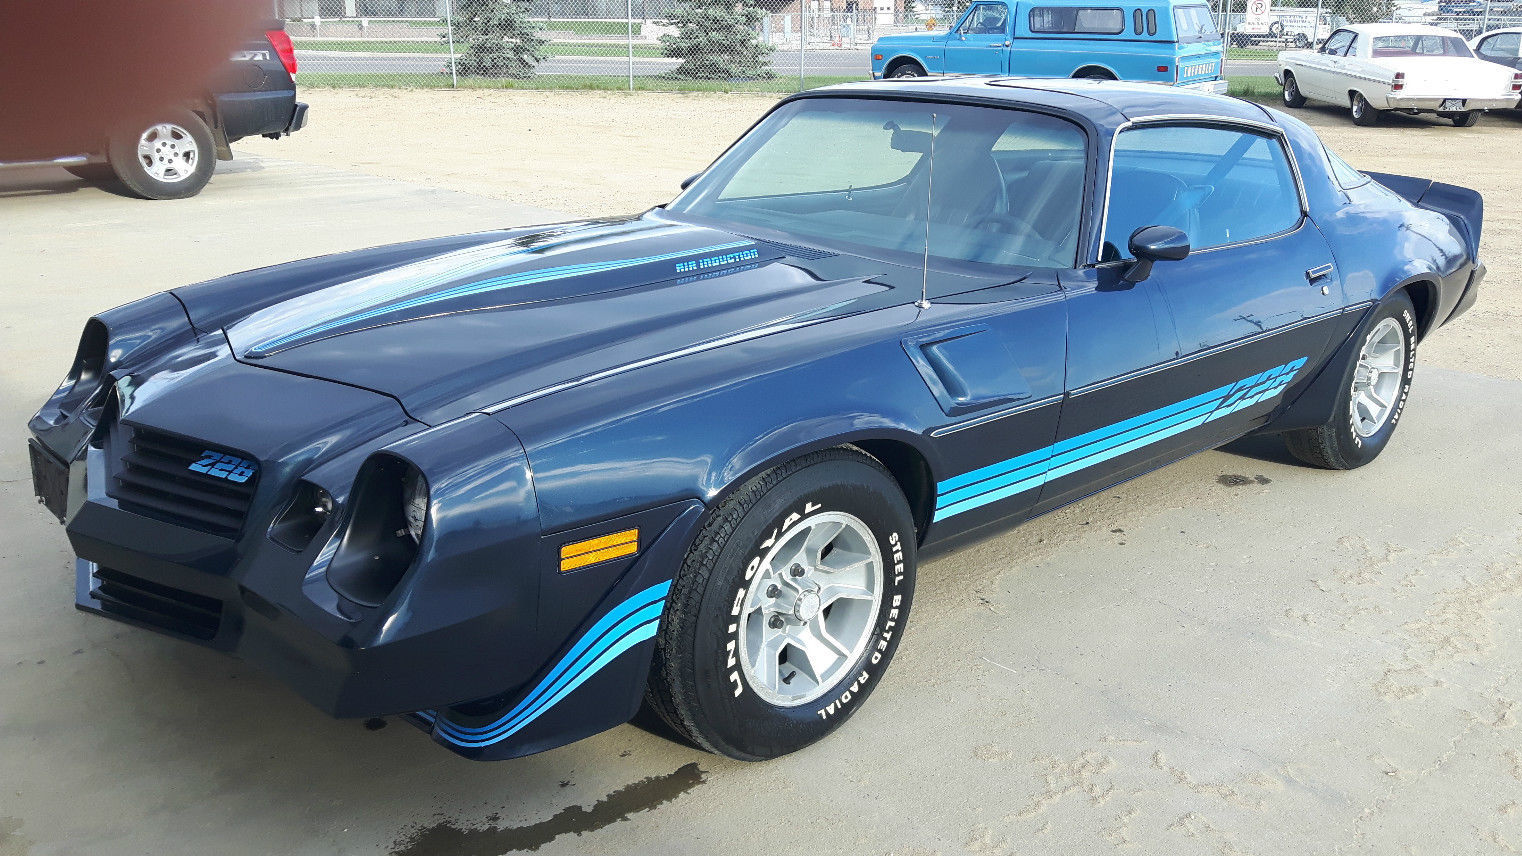 Original Tires 20k Mile 1981 Camaro Z28